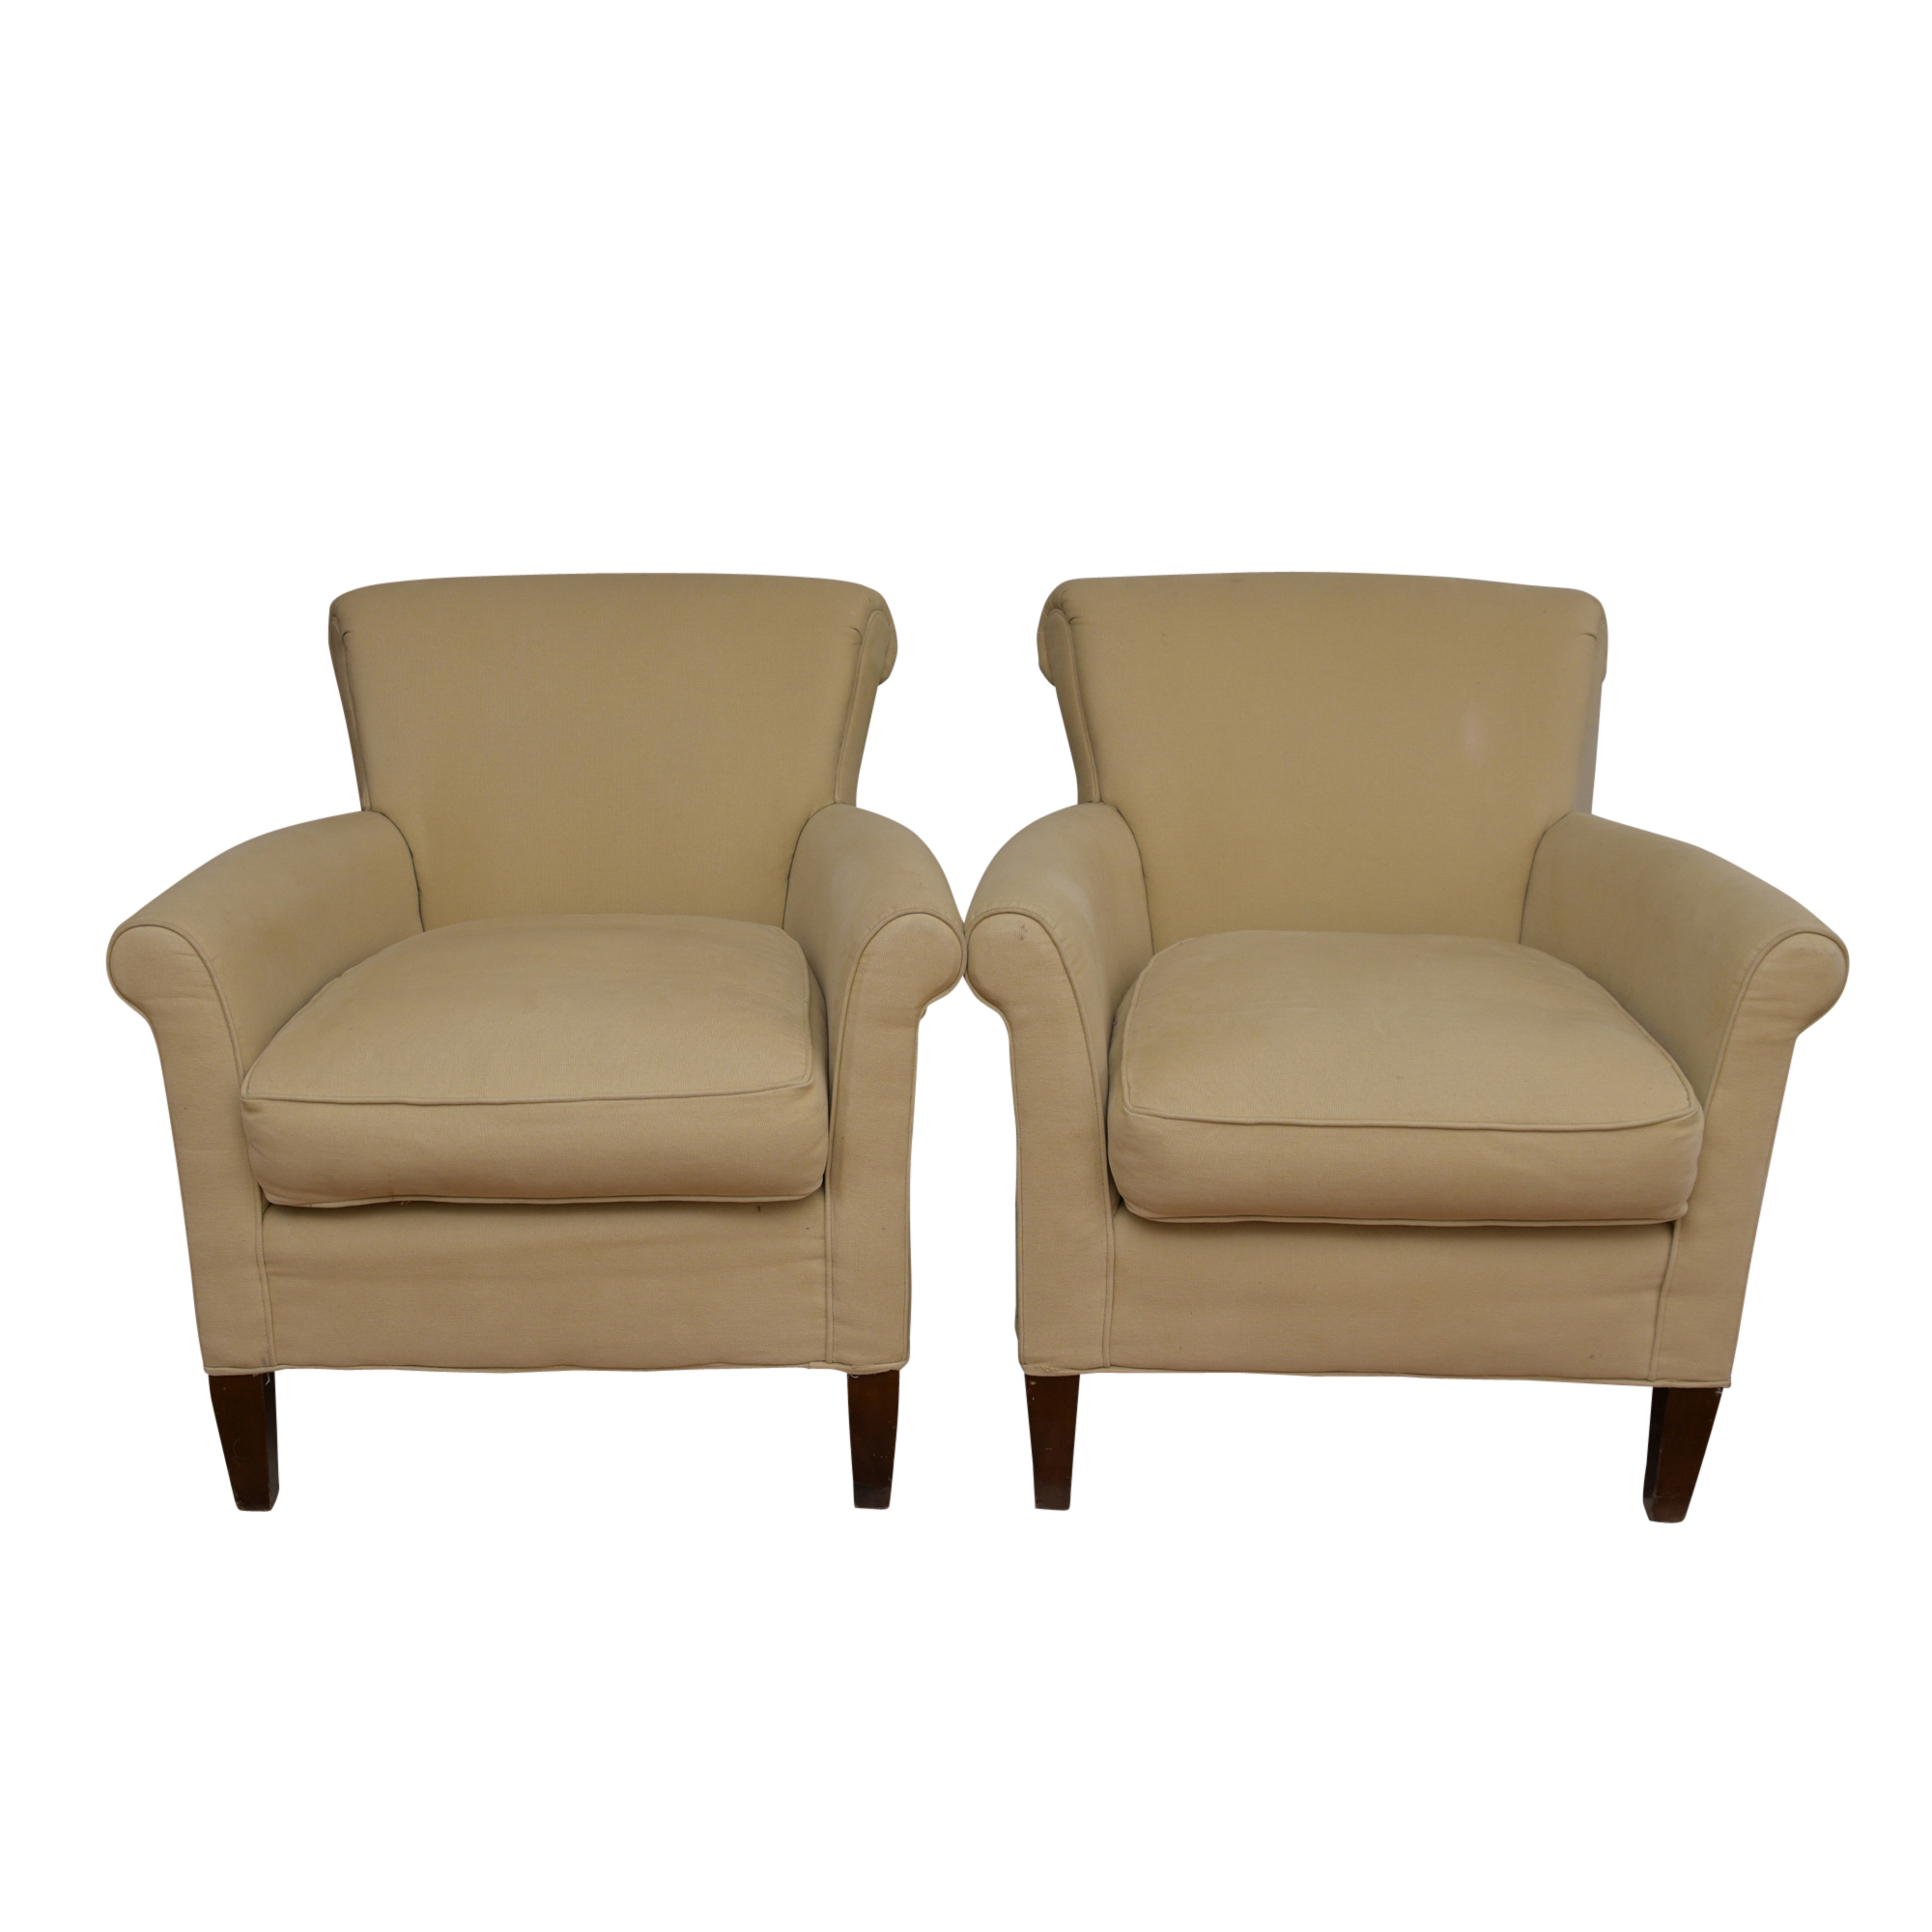 pembrook chair corp cosco high model 03354 beige upholstered armchairs by the ebth